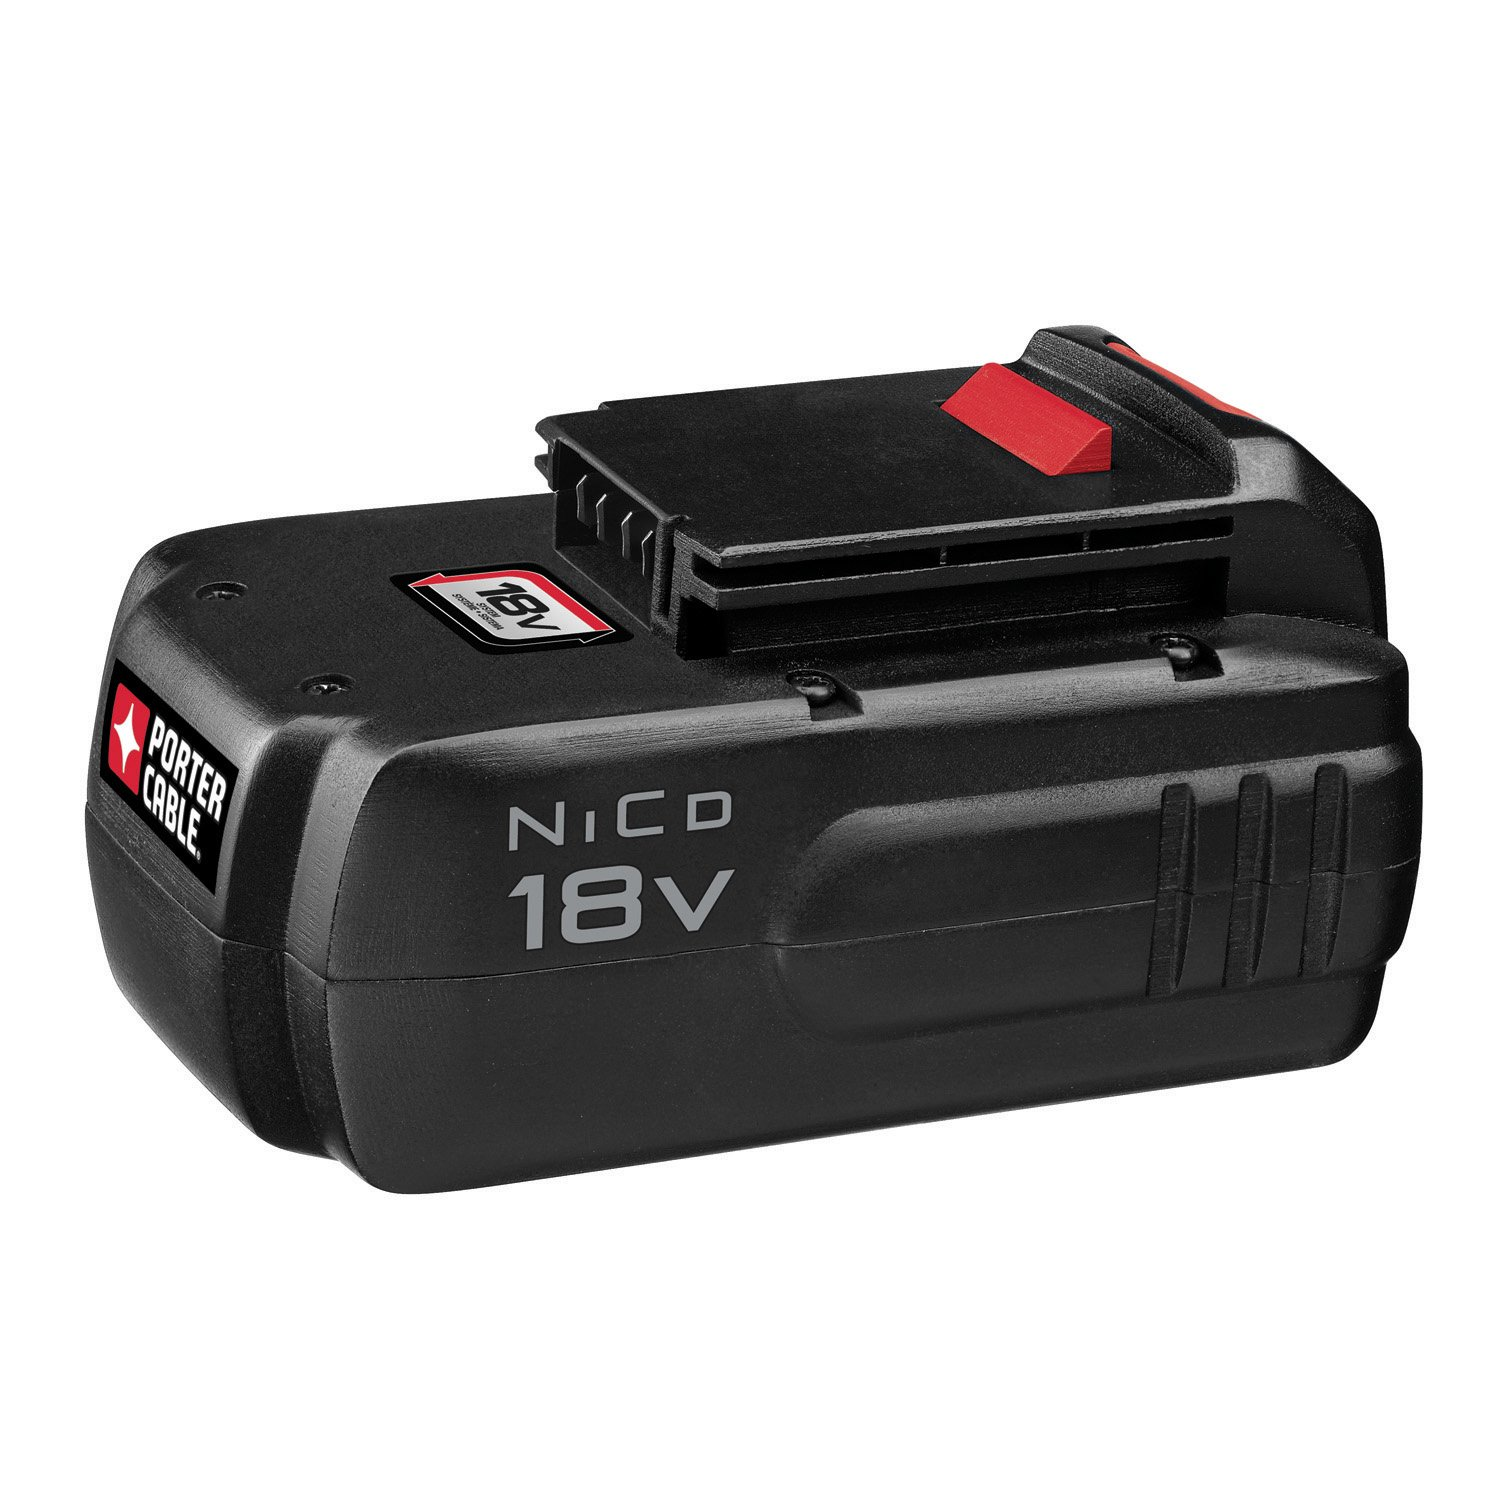 PORTER-CABLE PC18B 18-Volt NiCd Cordless Battery Pack